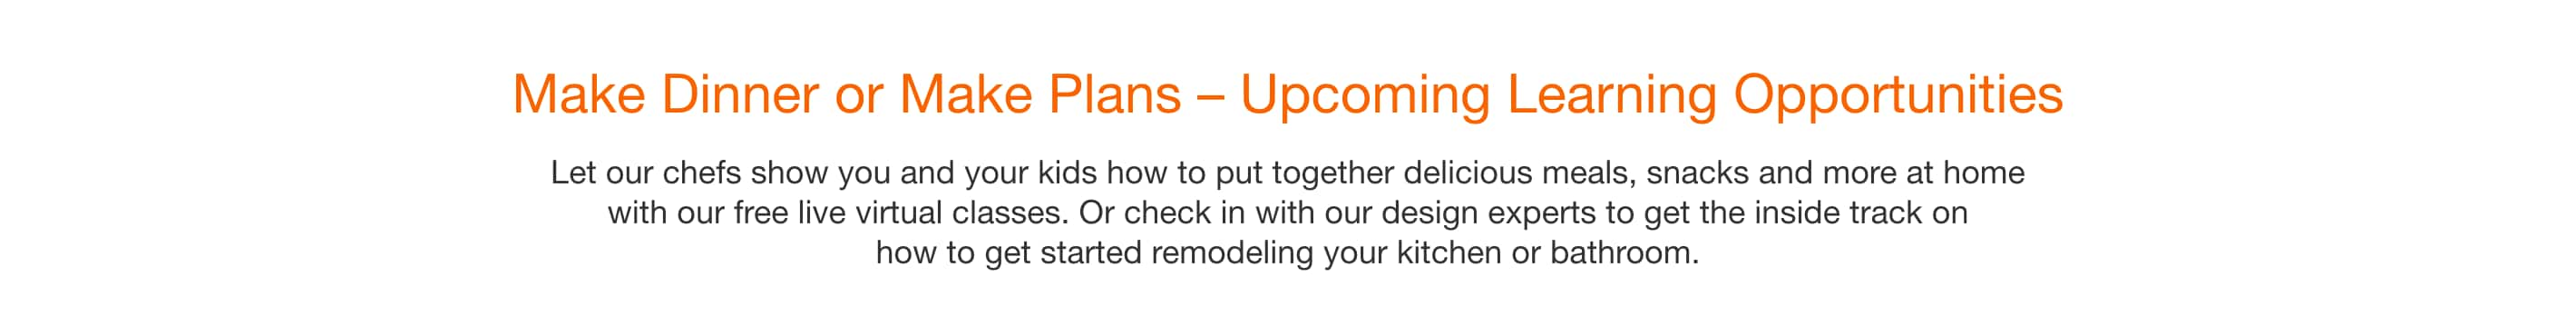 Make Dinner or Make Plans – Upcoming Learning Opportunities - Let our chefs show you and your kids how to put together delicious meals, snacks and more at home with our free live virtual classes. Or check in with our design experts to get the inside track on how to get started remodeling your kitchen or bathroom.